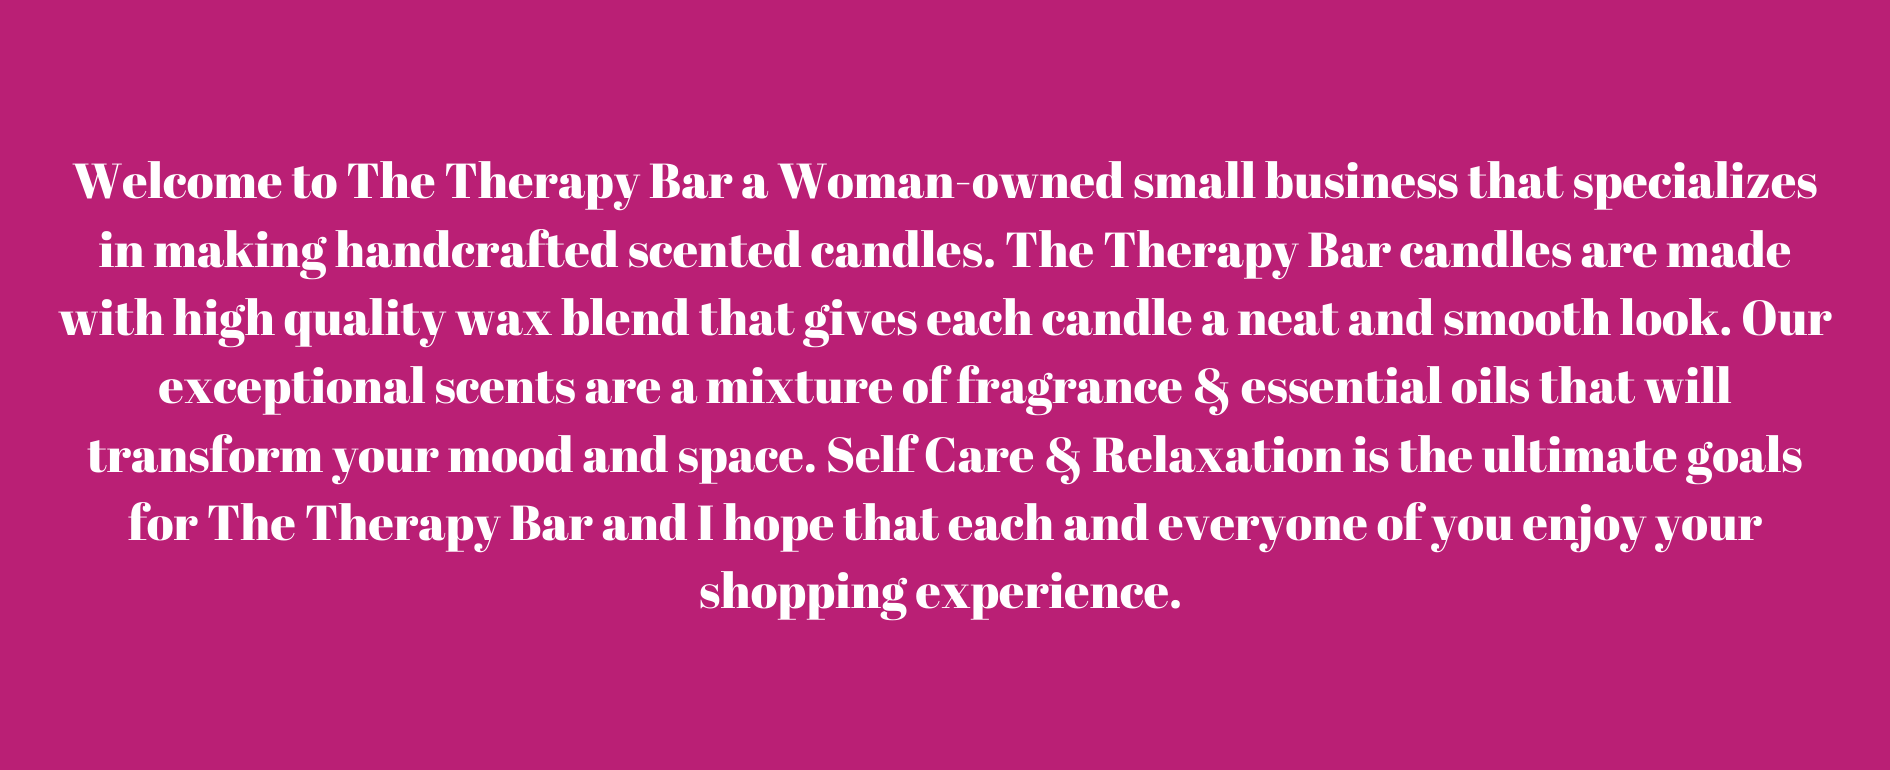 The Therapy Bar